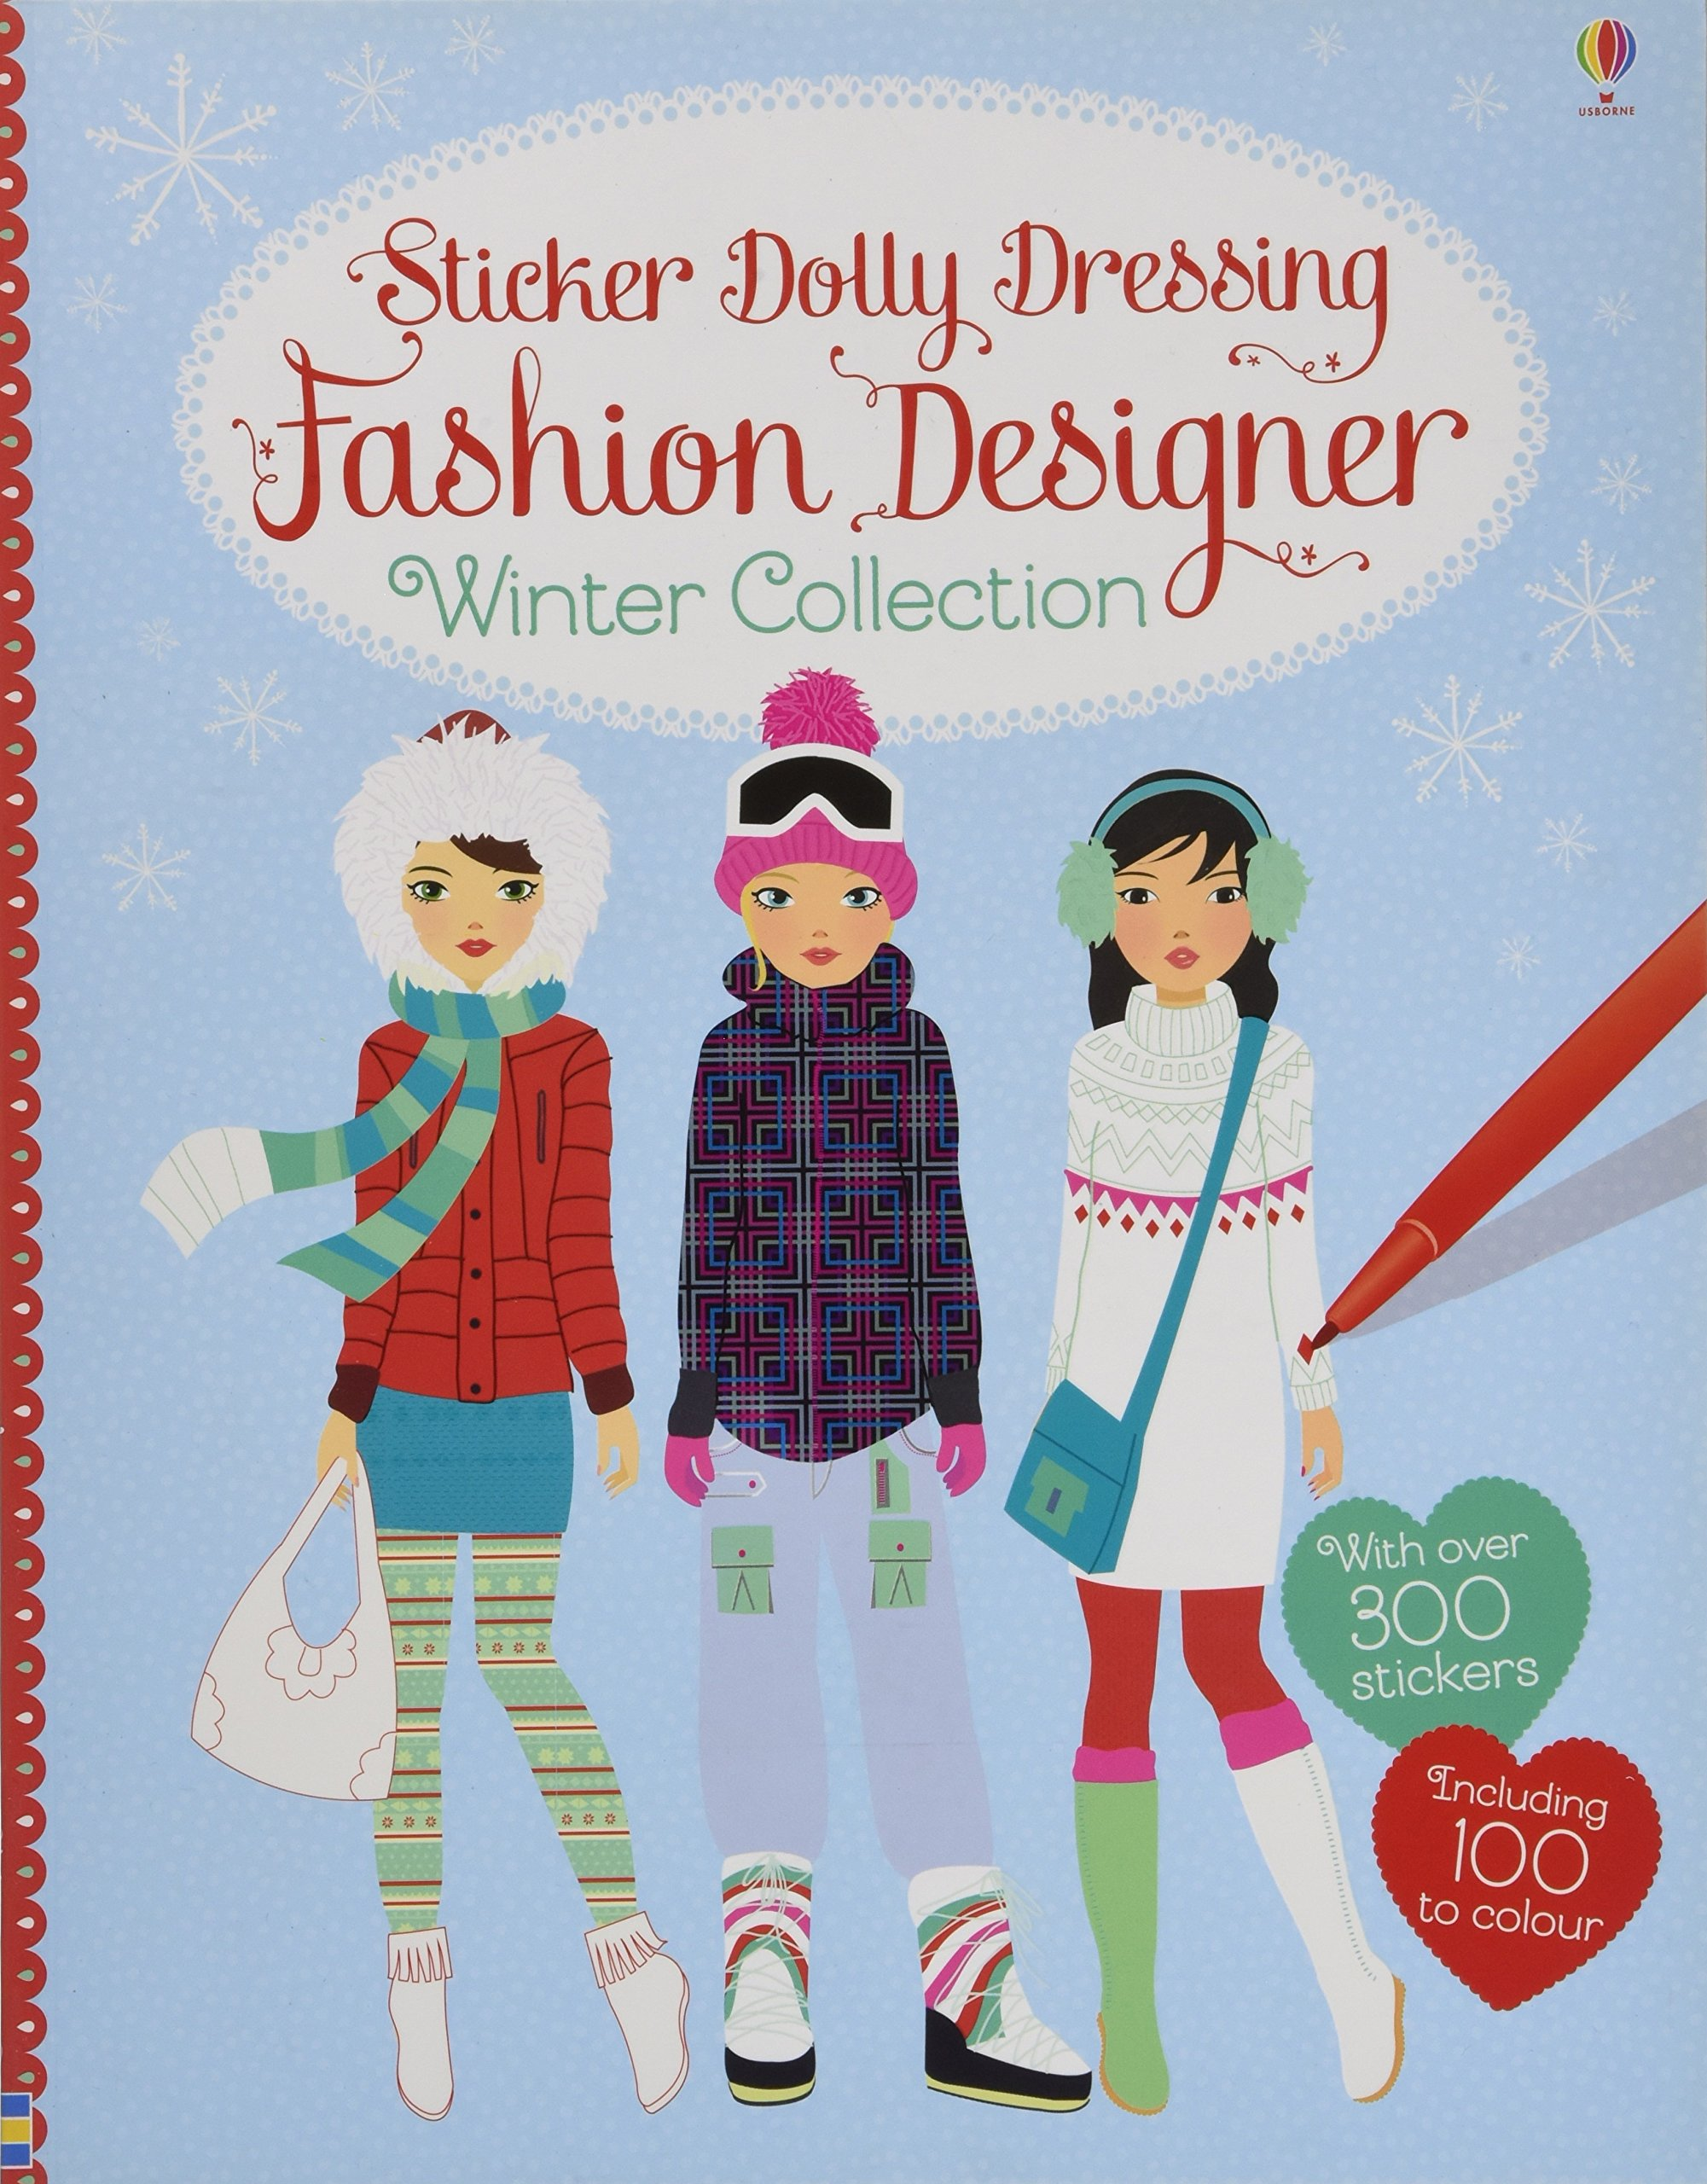 Sticker Dolly Dressing Fashion Designer Winter Collection Amazon Co Uk Fiona Watt Stella Baggott 9781409570561 Books